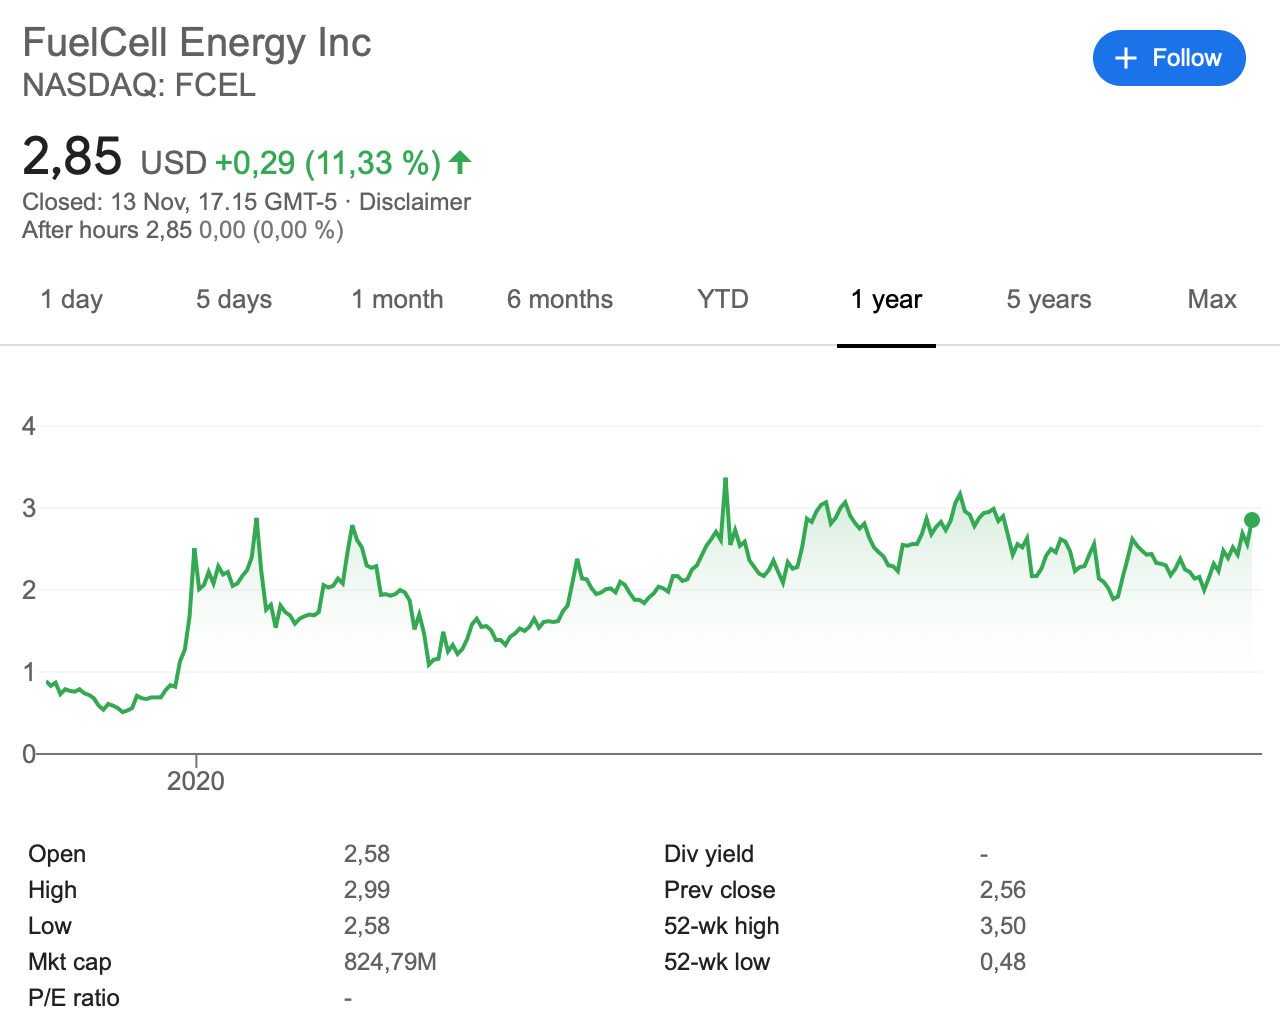 fuelcell-energy-Fcel-stock-graph-internet-bull-report